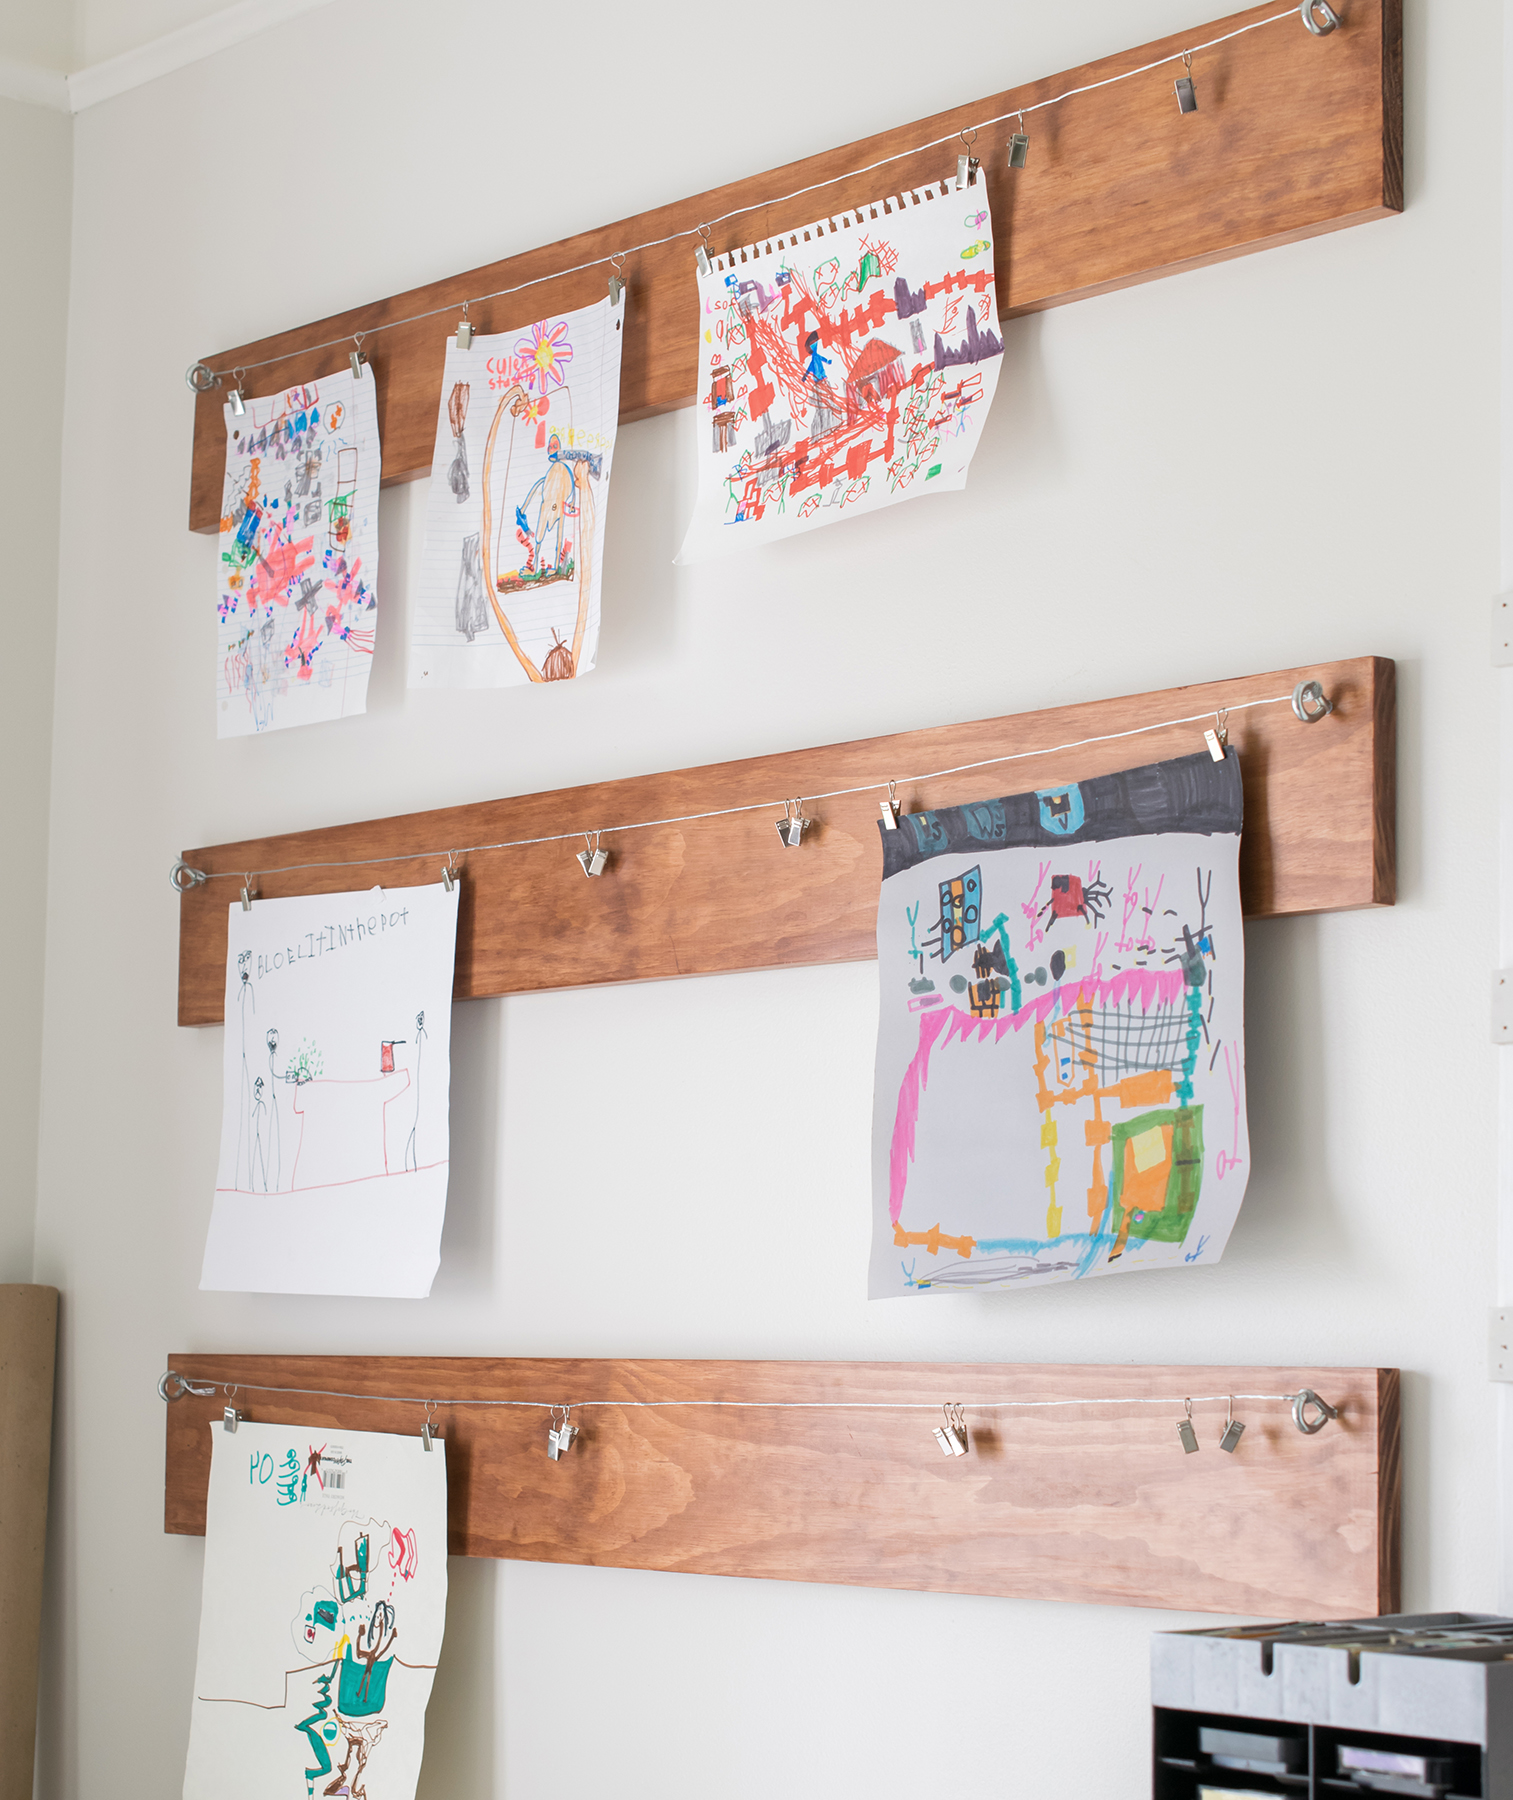 Kidsu0027 art hanging from wire on wood boards & 6 Ways to Display Your Kidu0027s Artwork | Real Simple